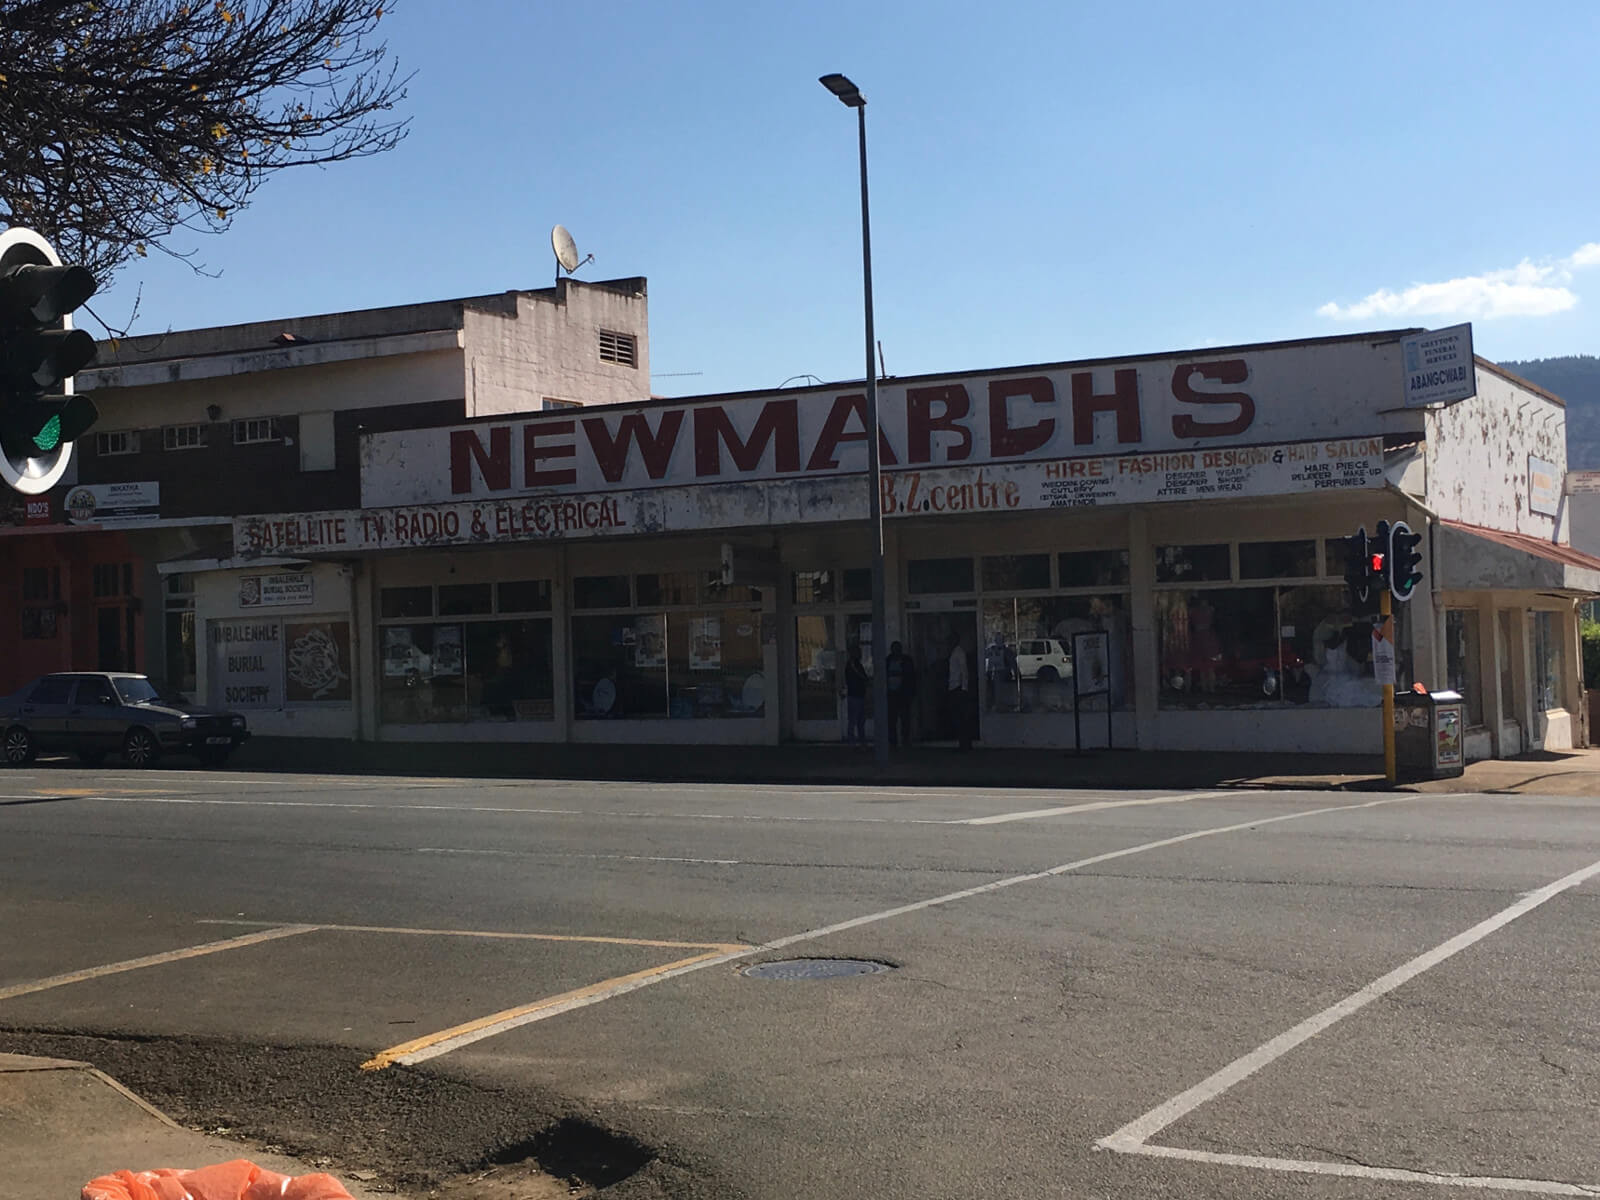 Greytown High Street – the Newmarch store